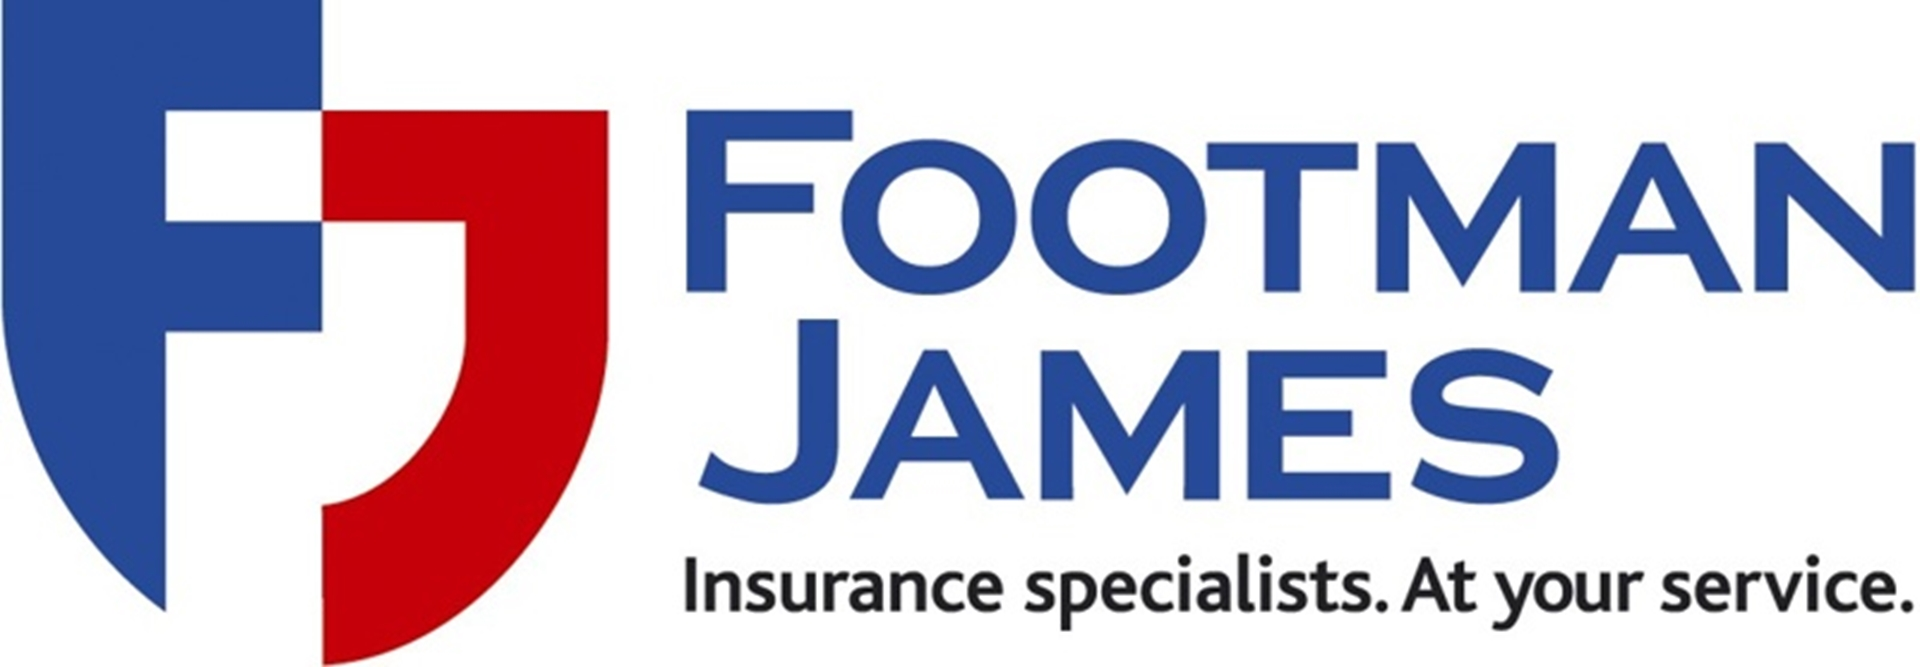 footman-james